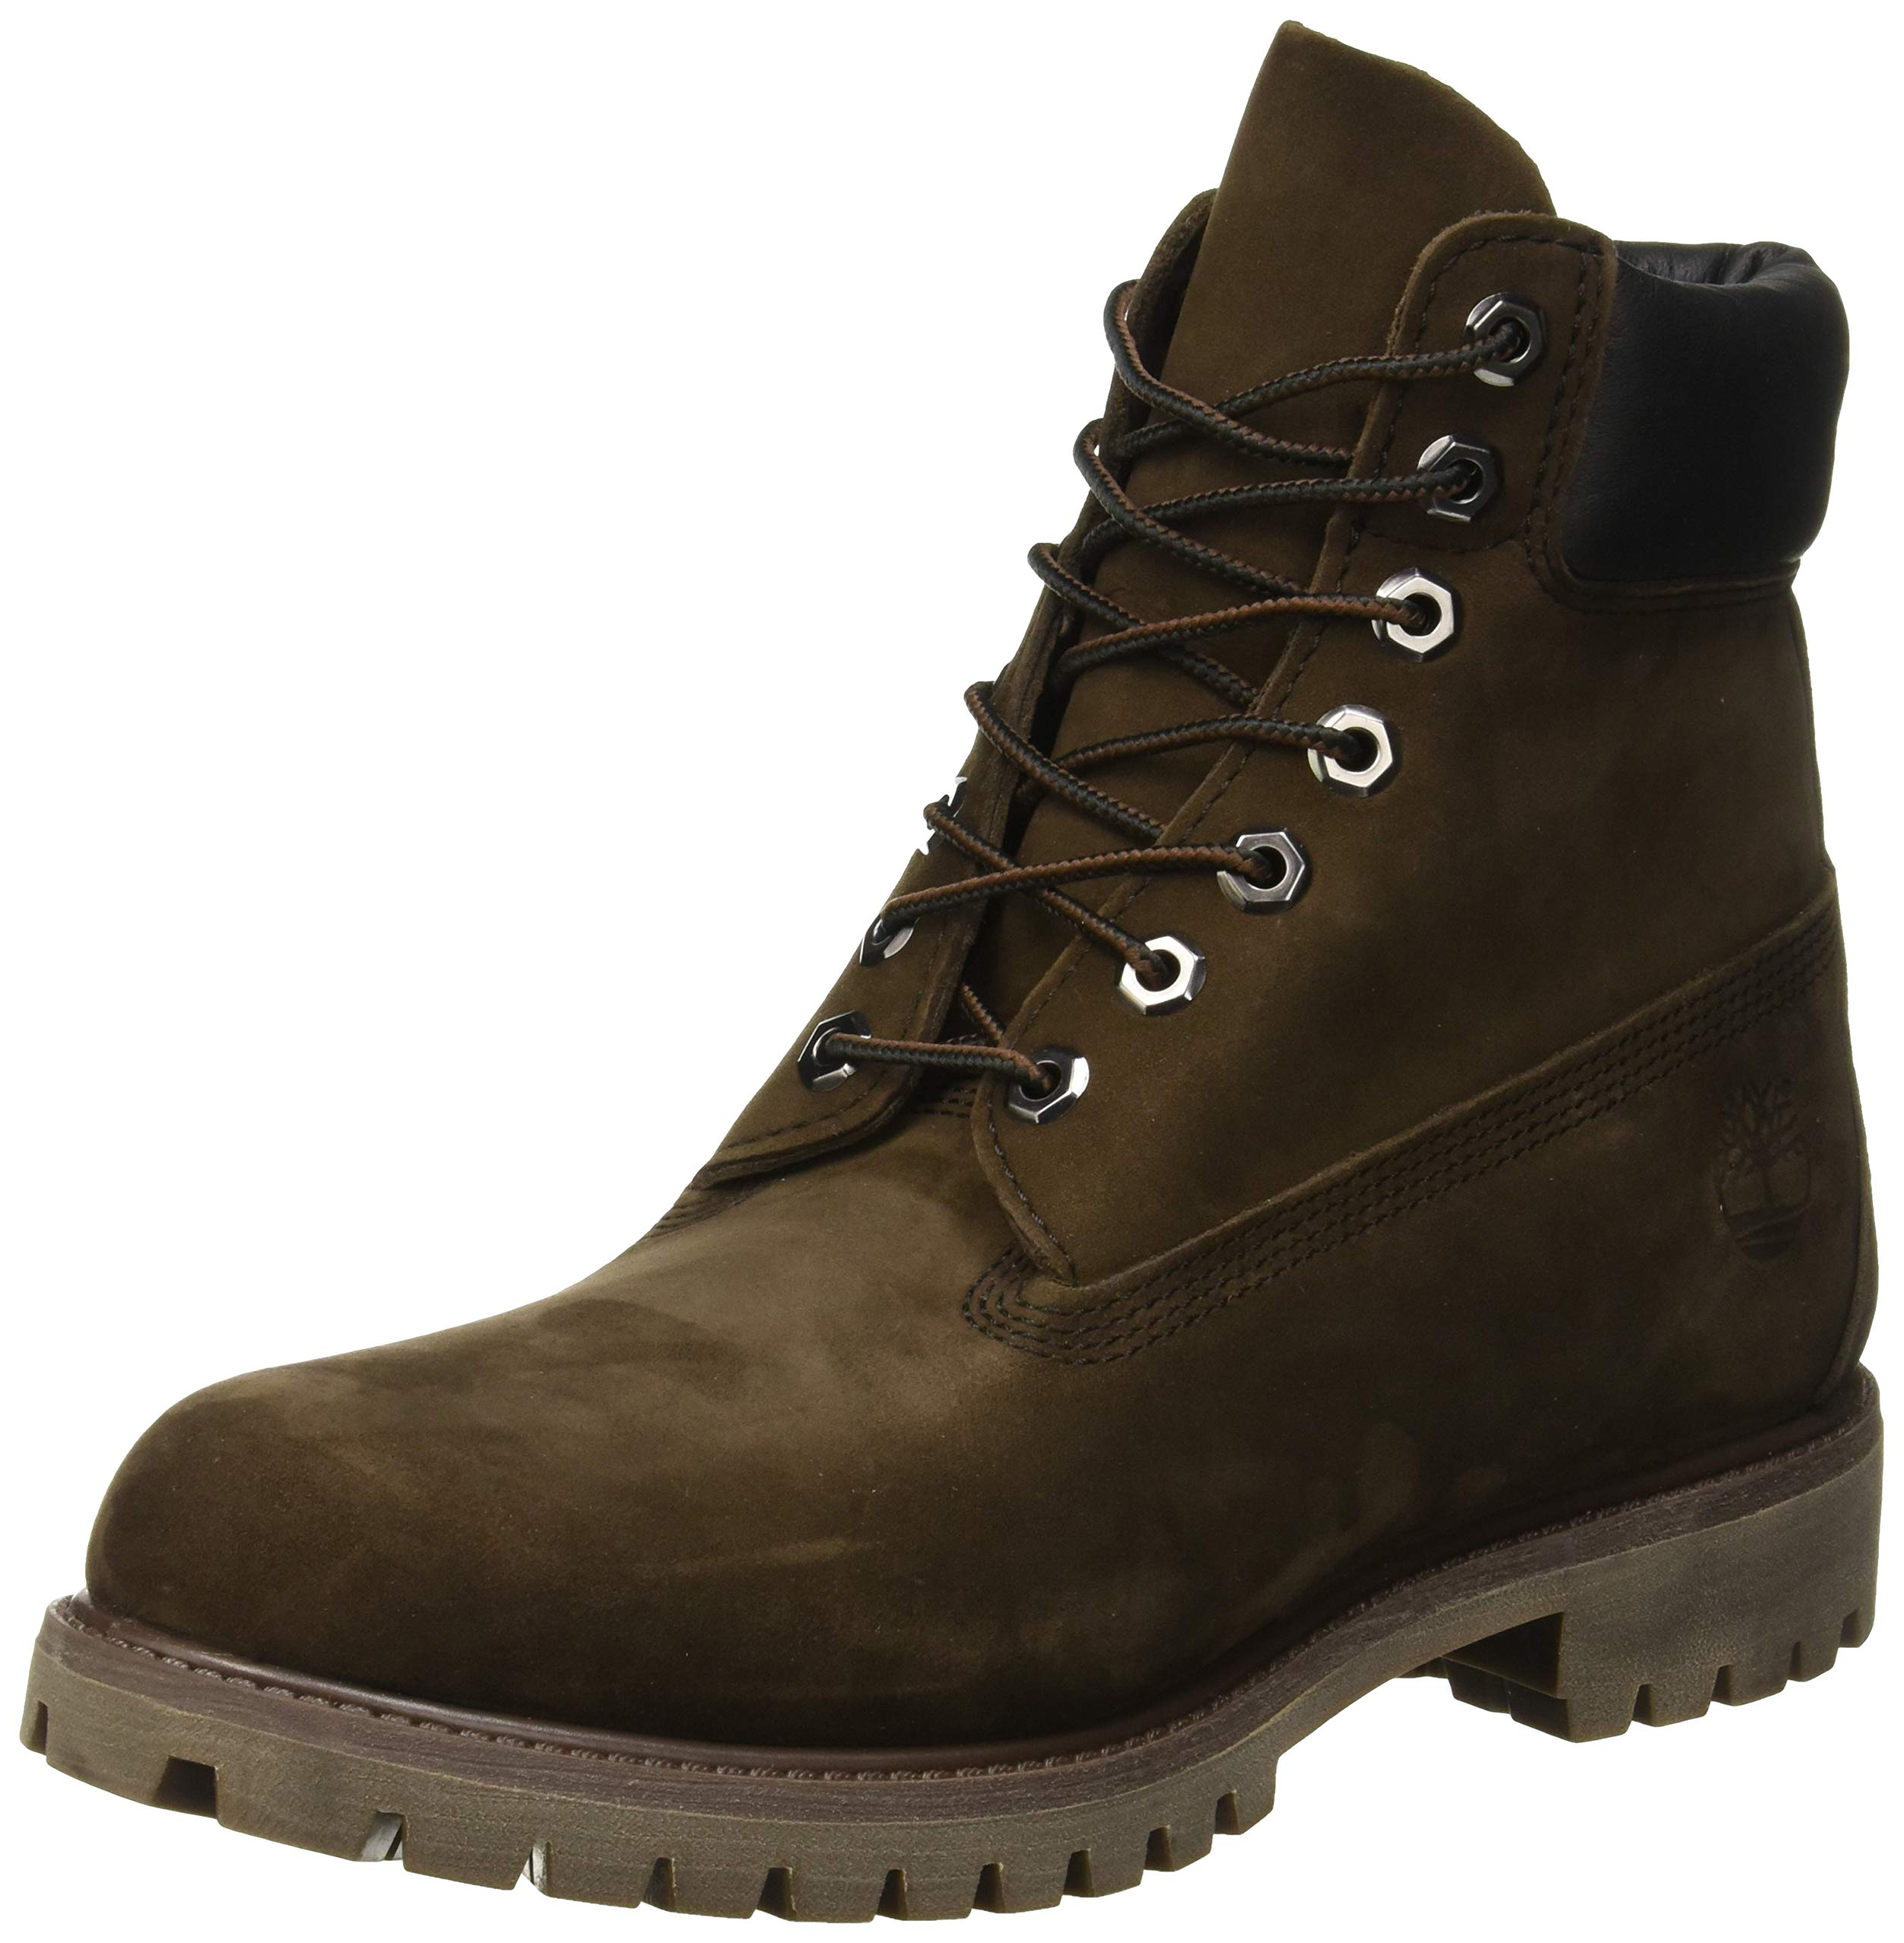 76da1734ea9 Galleon - Timberland Men's 6